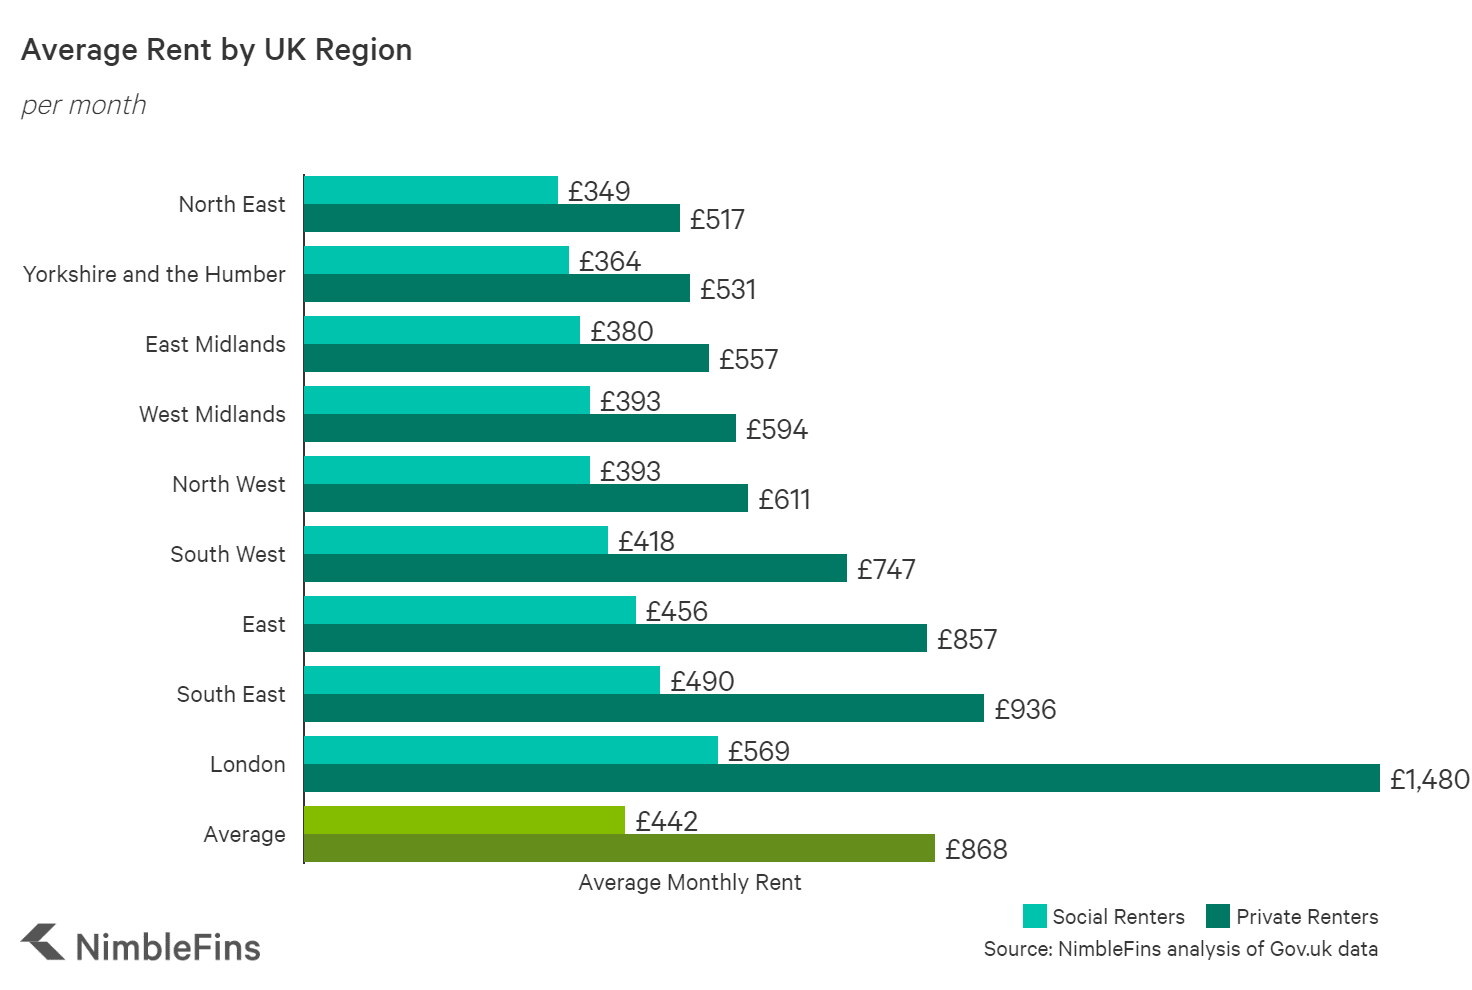 Chart showing the average rent by region in England